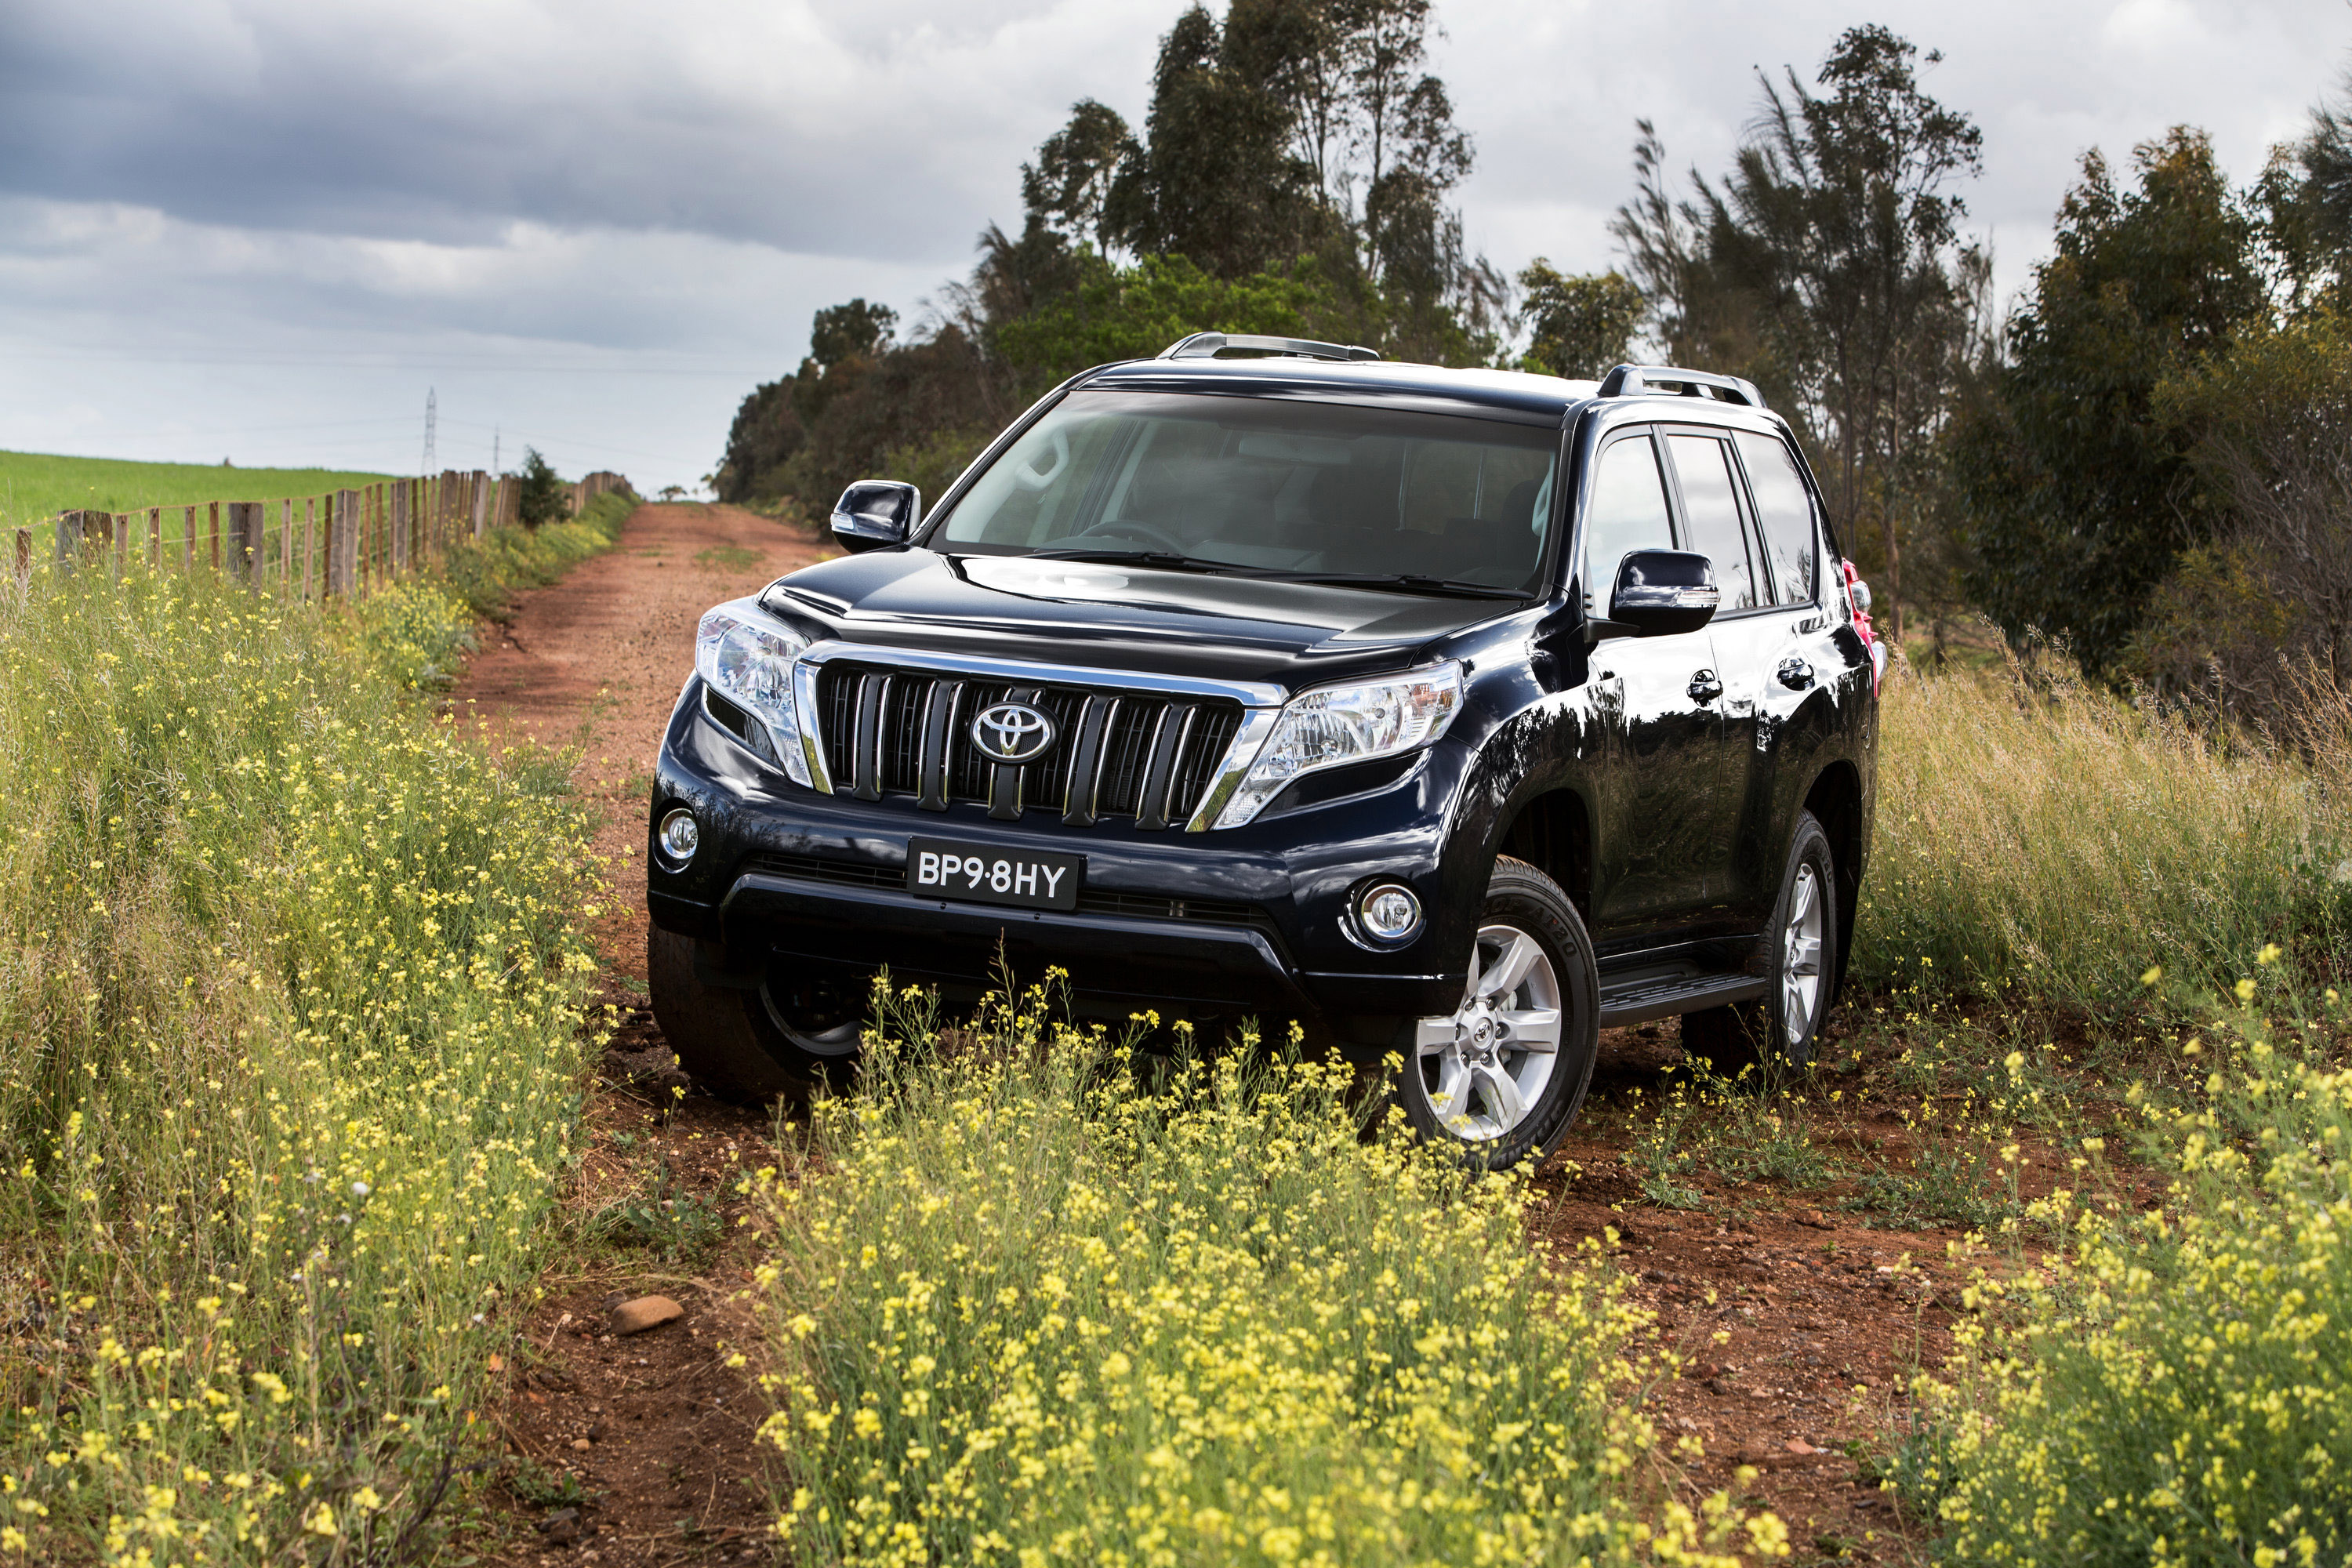 2016 toyota landcruiser prado pricing and specifications photos 1 of 28. Black Bedroom Furniture Sets. Home Design Ideas